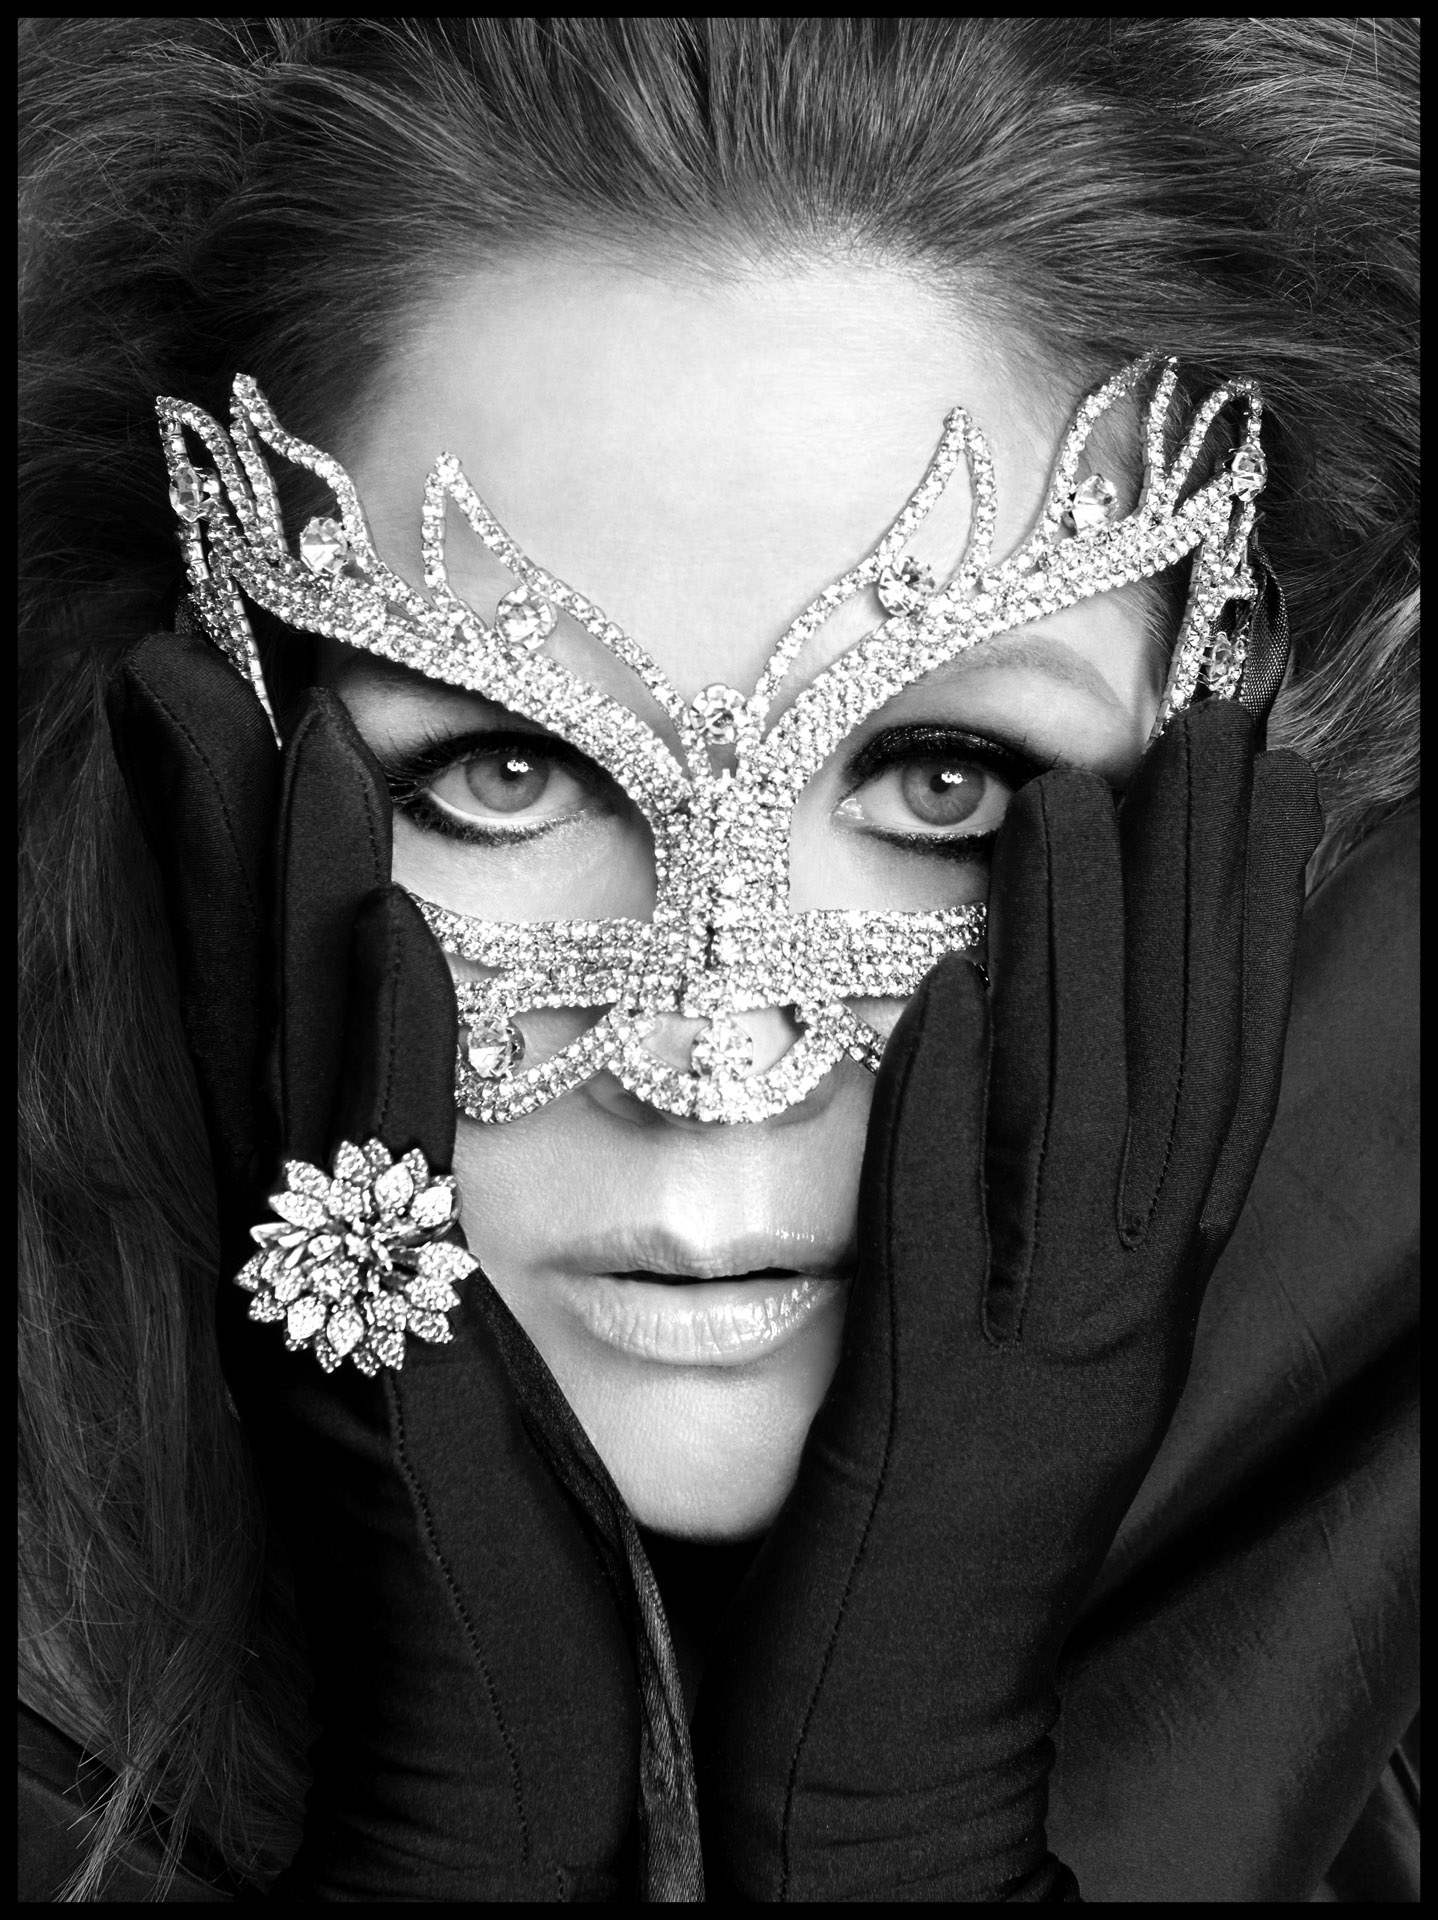 Mask ALEXIS BITTAR / Ring ANN ZIFF for TAMSEN Z / Gloves LACRASIA